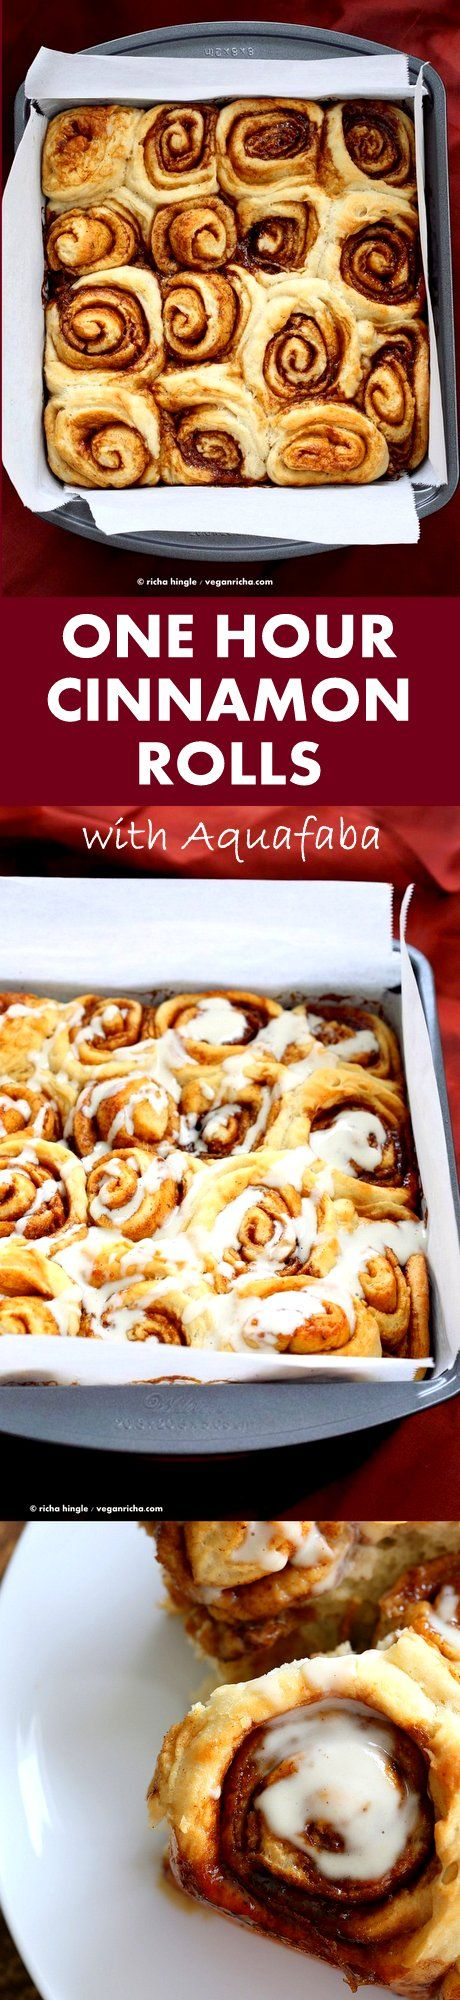 1 hour Cinnamon Rolls with Aquafaba. Easy Homemade Vegan Cinnamon Rolls with Cashew cream frosting. Ready in 60 minutes. #Vegan #Soyfree #PalmOilfree #Breakfast #Recipe | VeganRicha.com